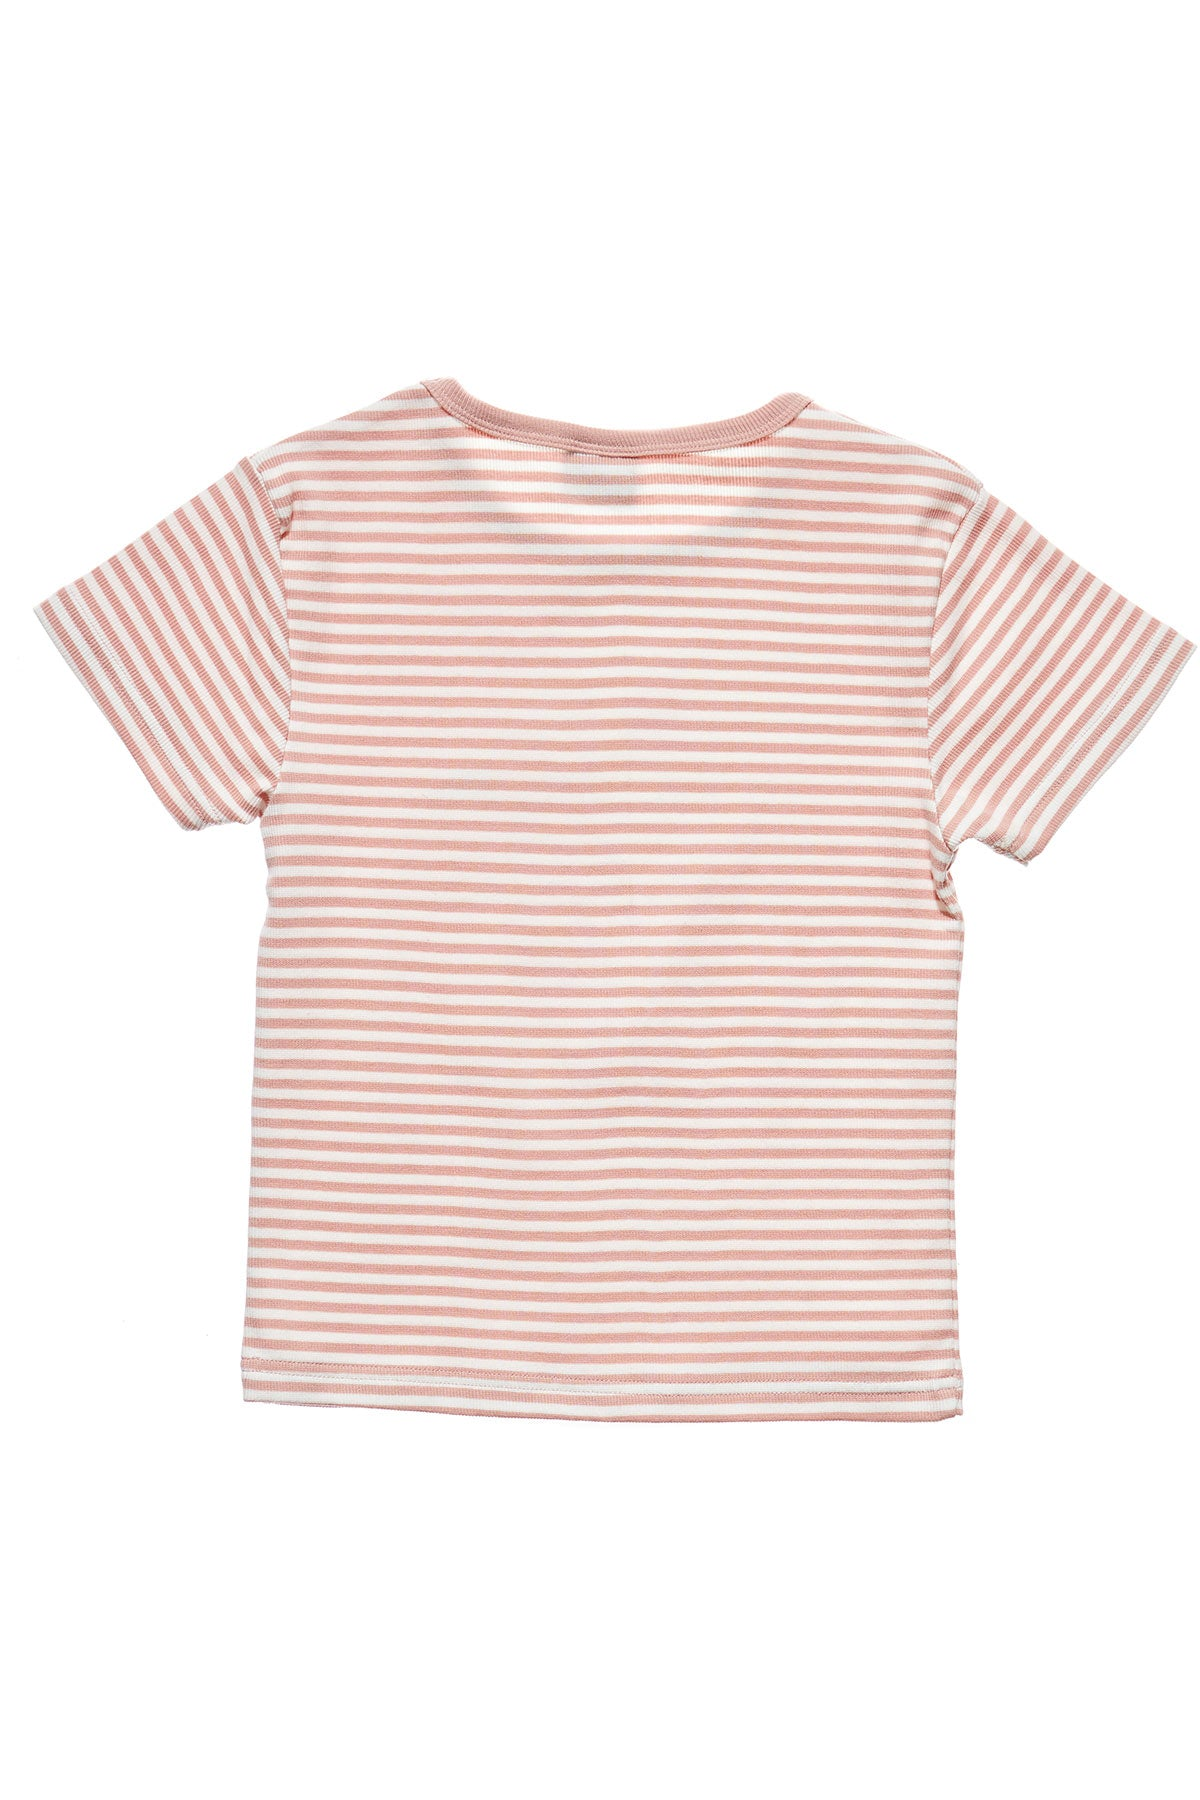 Hyde Stripe Rib Tee